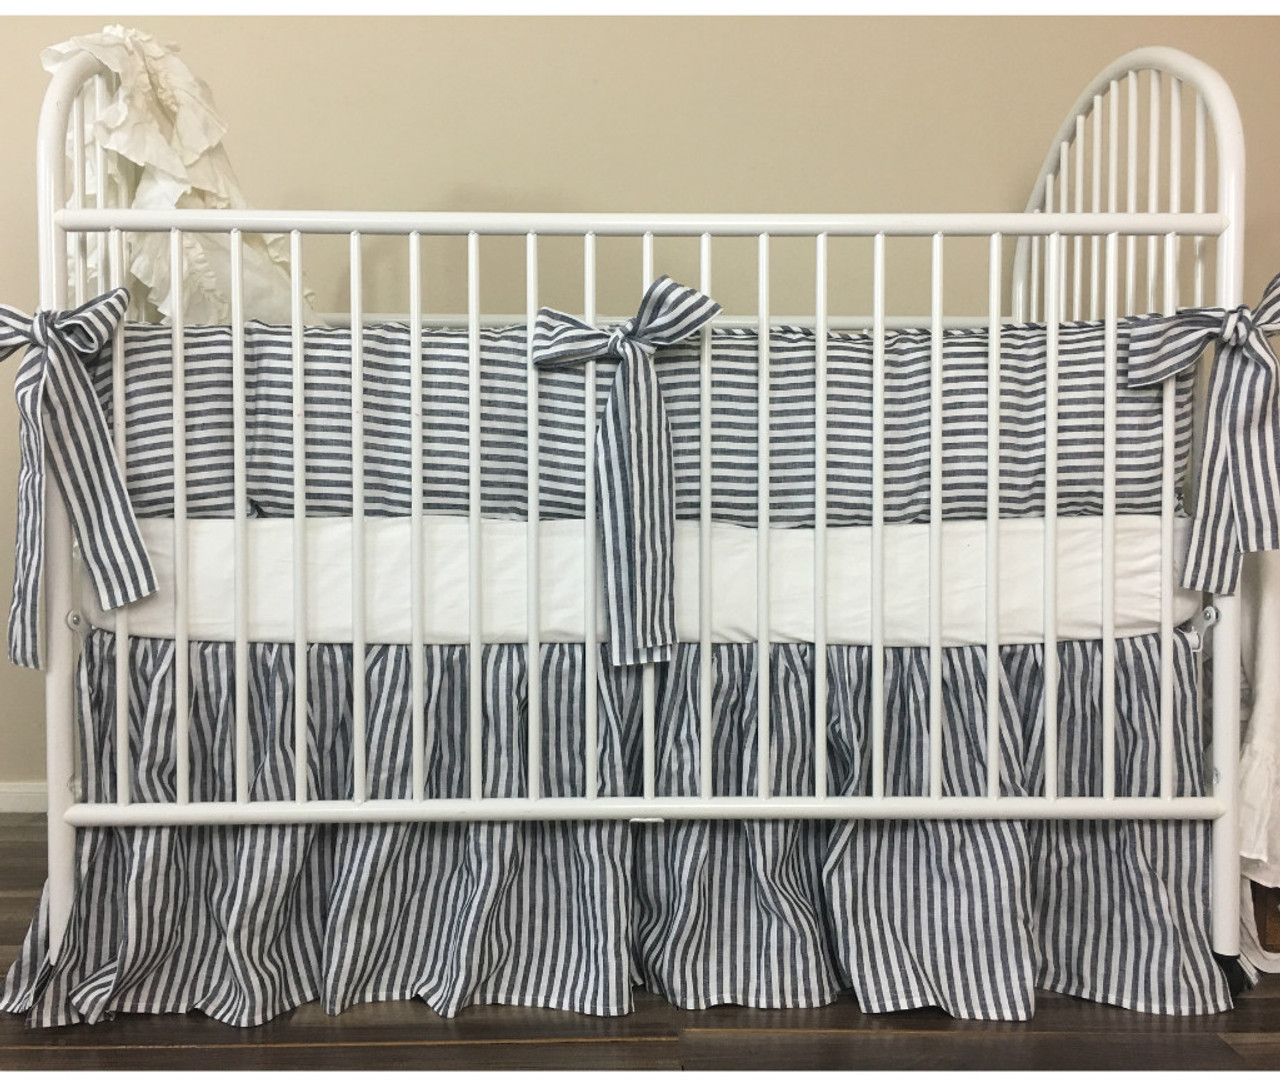 set size with girl sets small spaces for bedding white baby cribs infant your wooden of best com design make table crib dreaming onionskeen the full scheme kid a